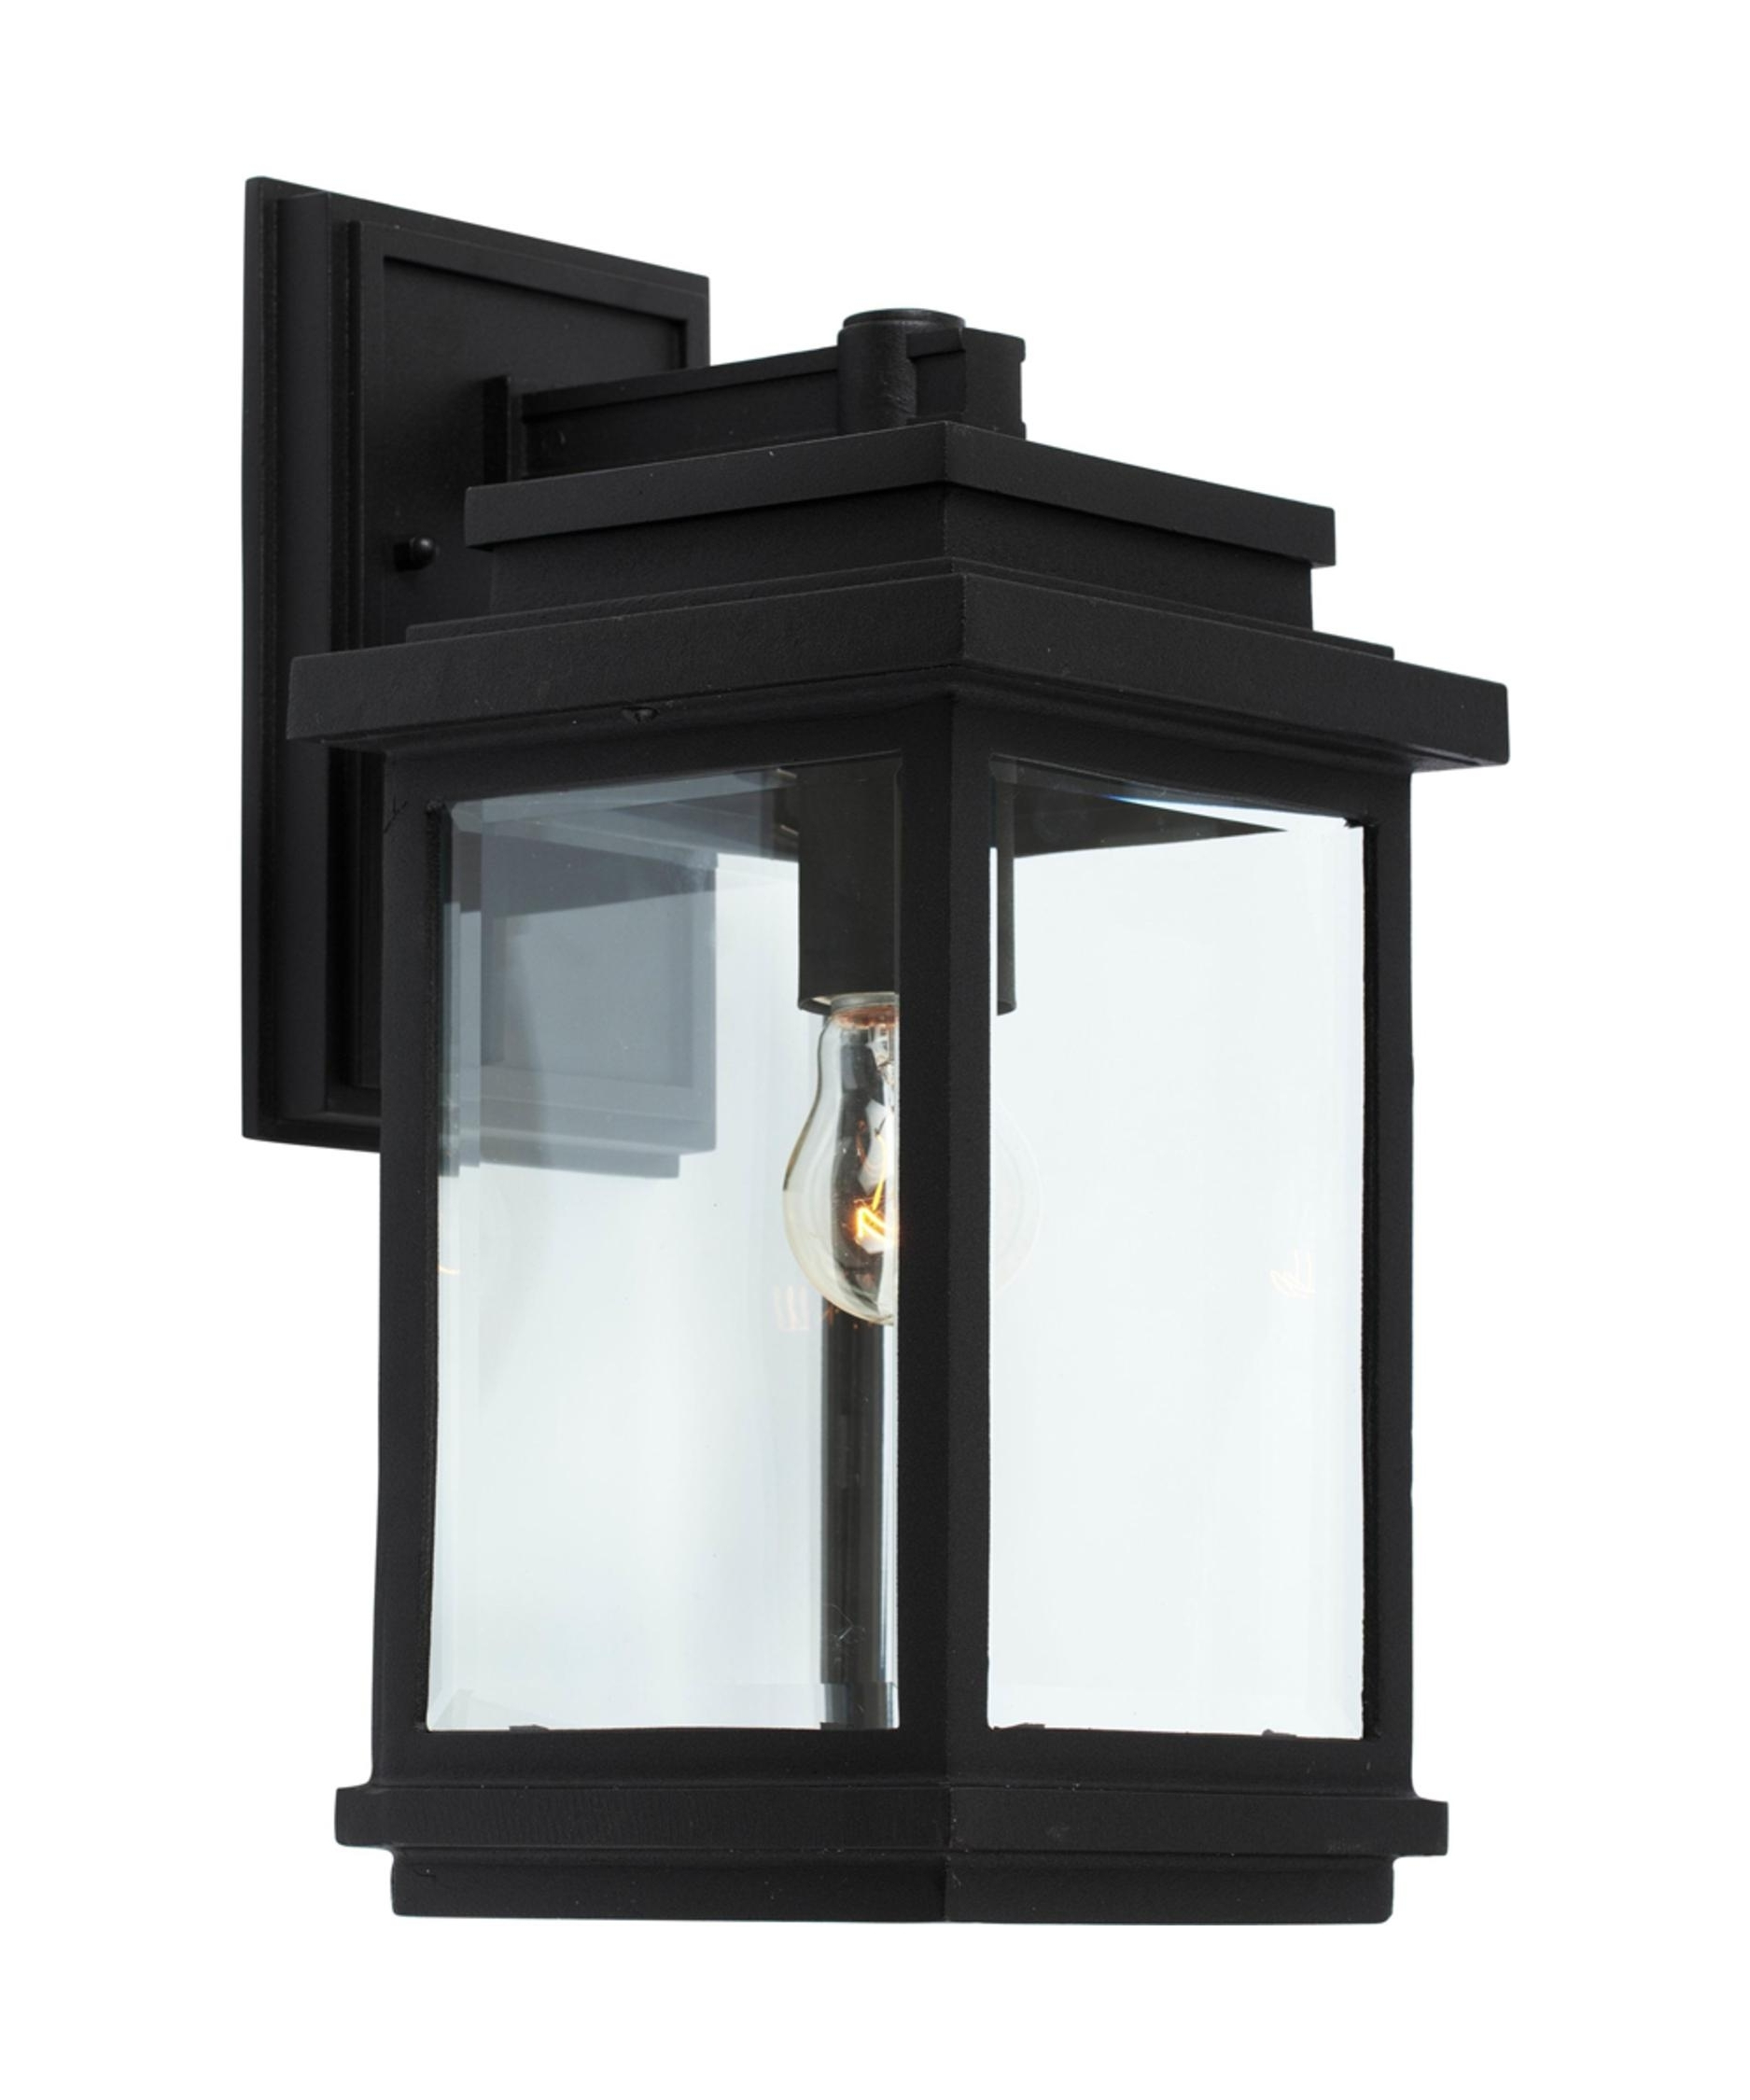 Artcraft Ac8290 Fremont 7 Inch Wide 1 Light Outdoor Wall Light Pertaining To Popular Black Outdoor Wall Lighting (View 3 of 20)